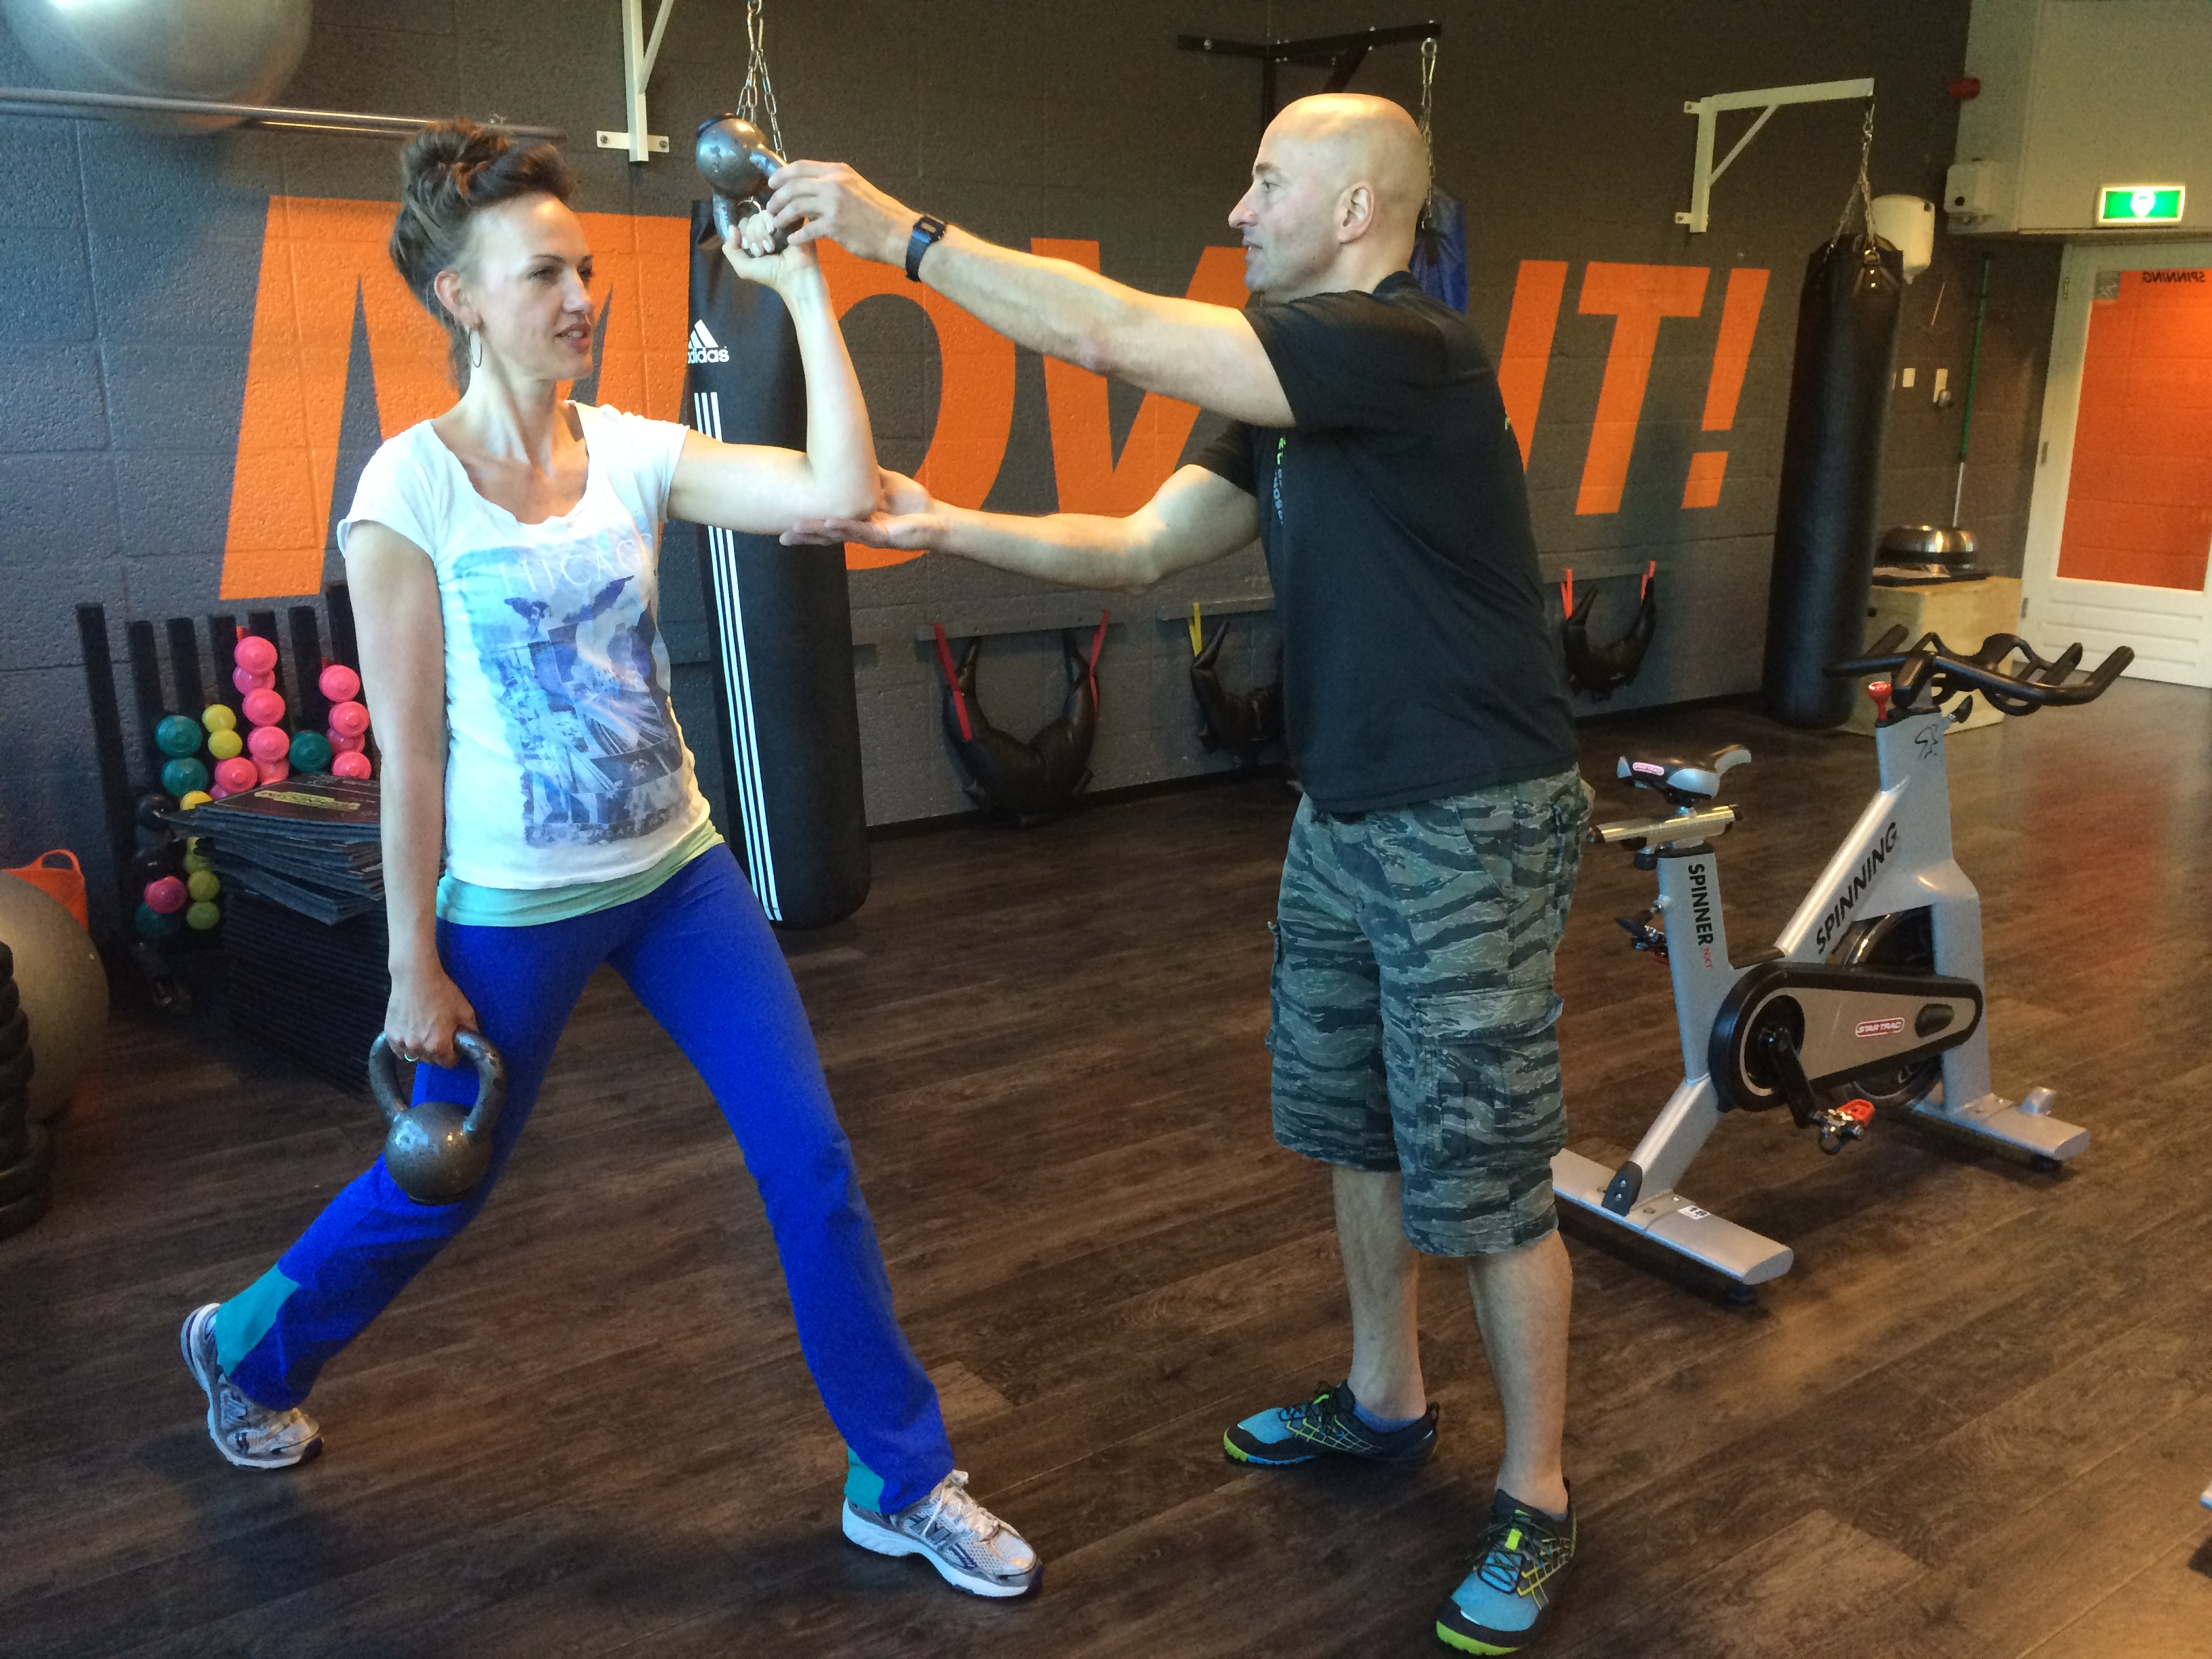 jefitcoach Ray Purmerend